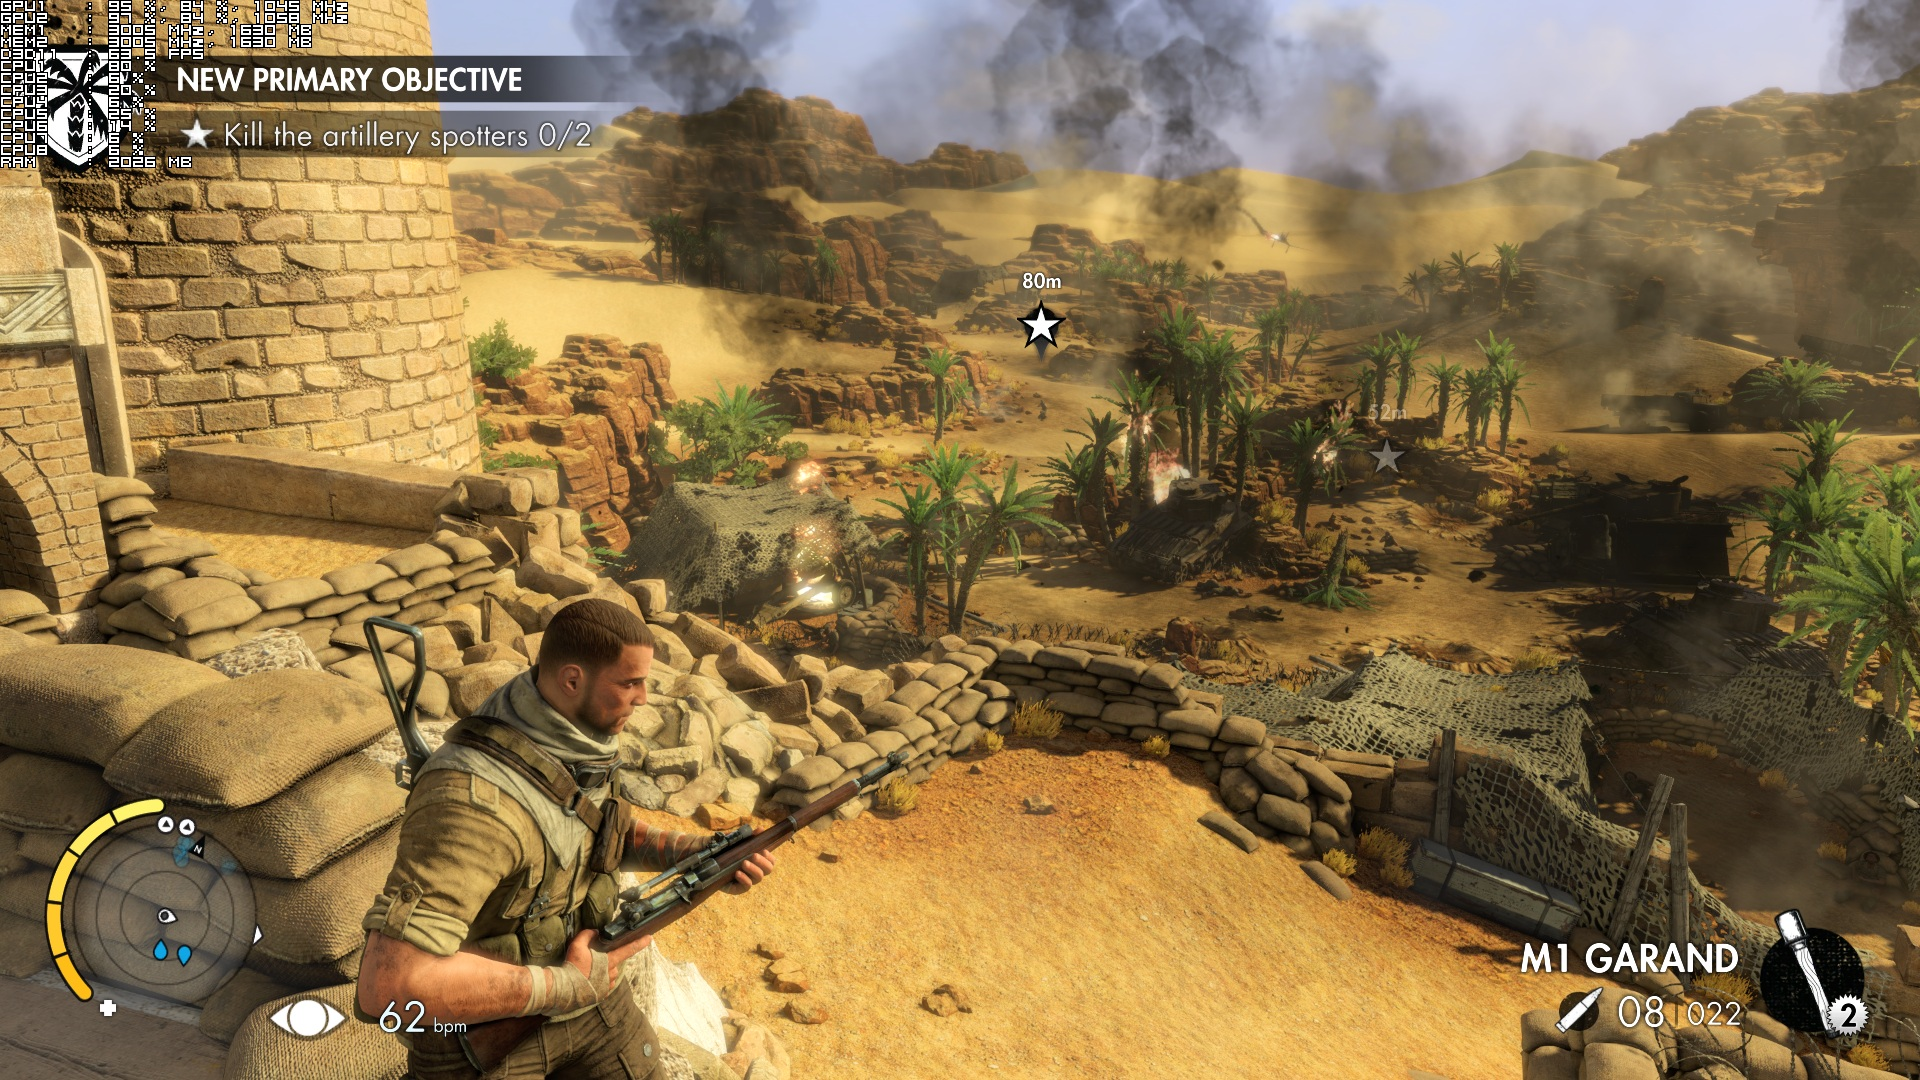 All in all, Sniper Elite 3 performs amazingly well on the PC. Rebellion did an excellent work and Nvidia has not dropped the SLI ball on this one.